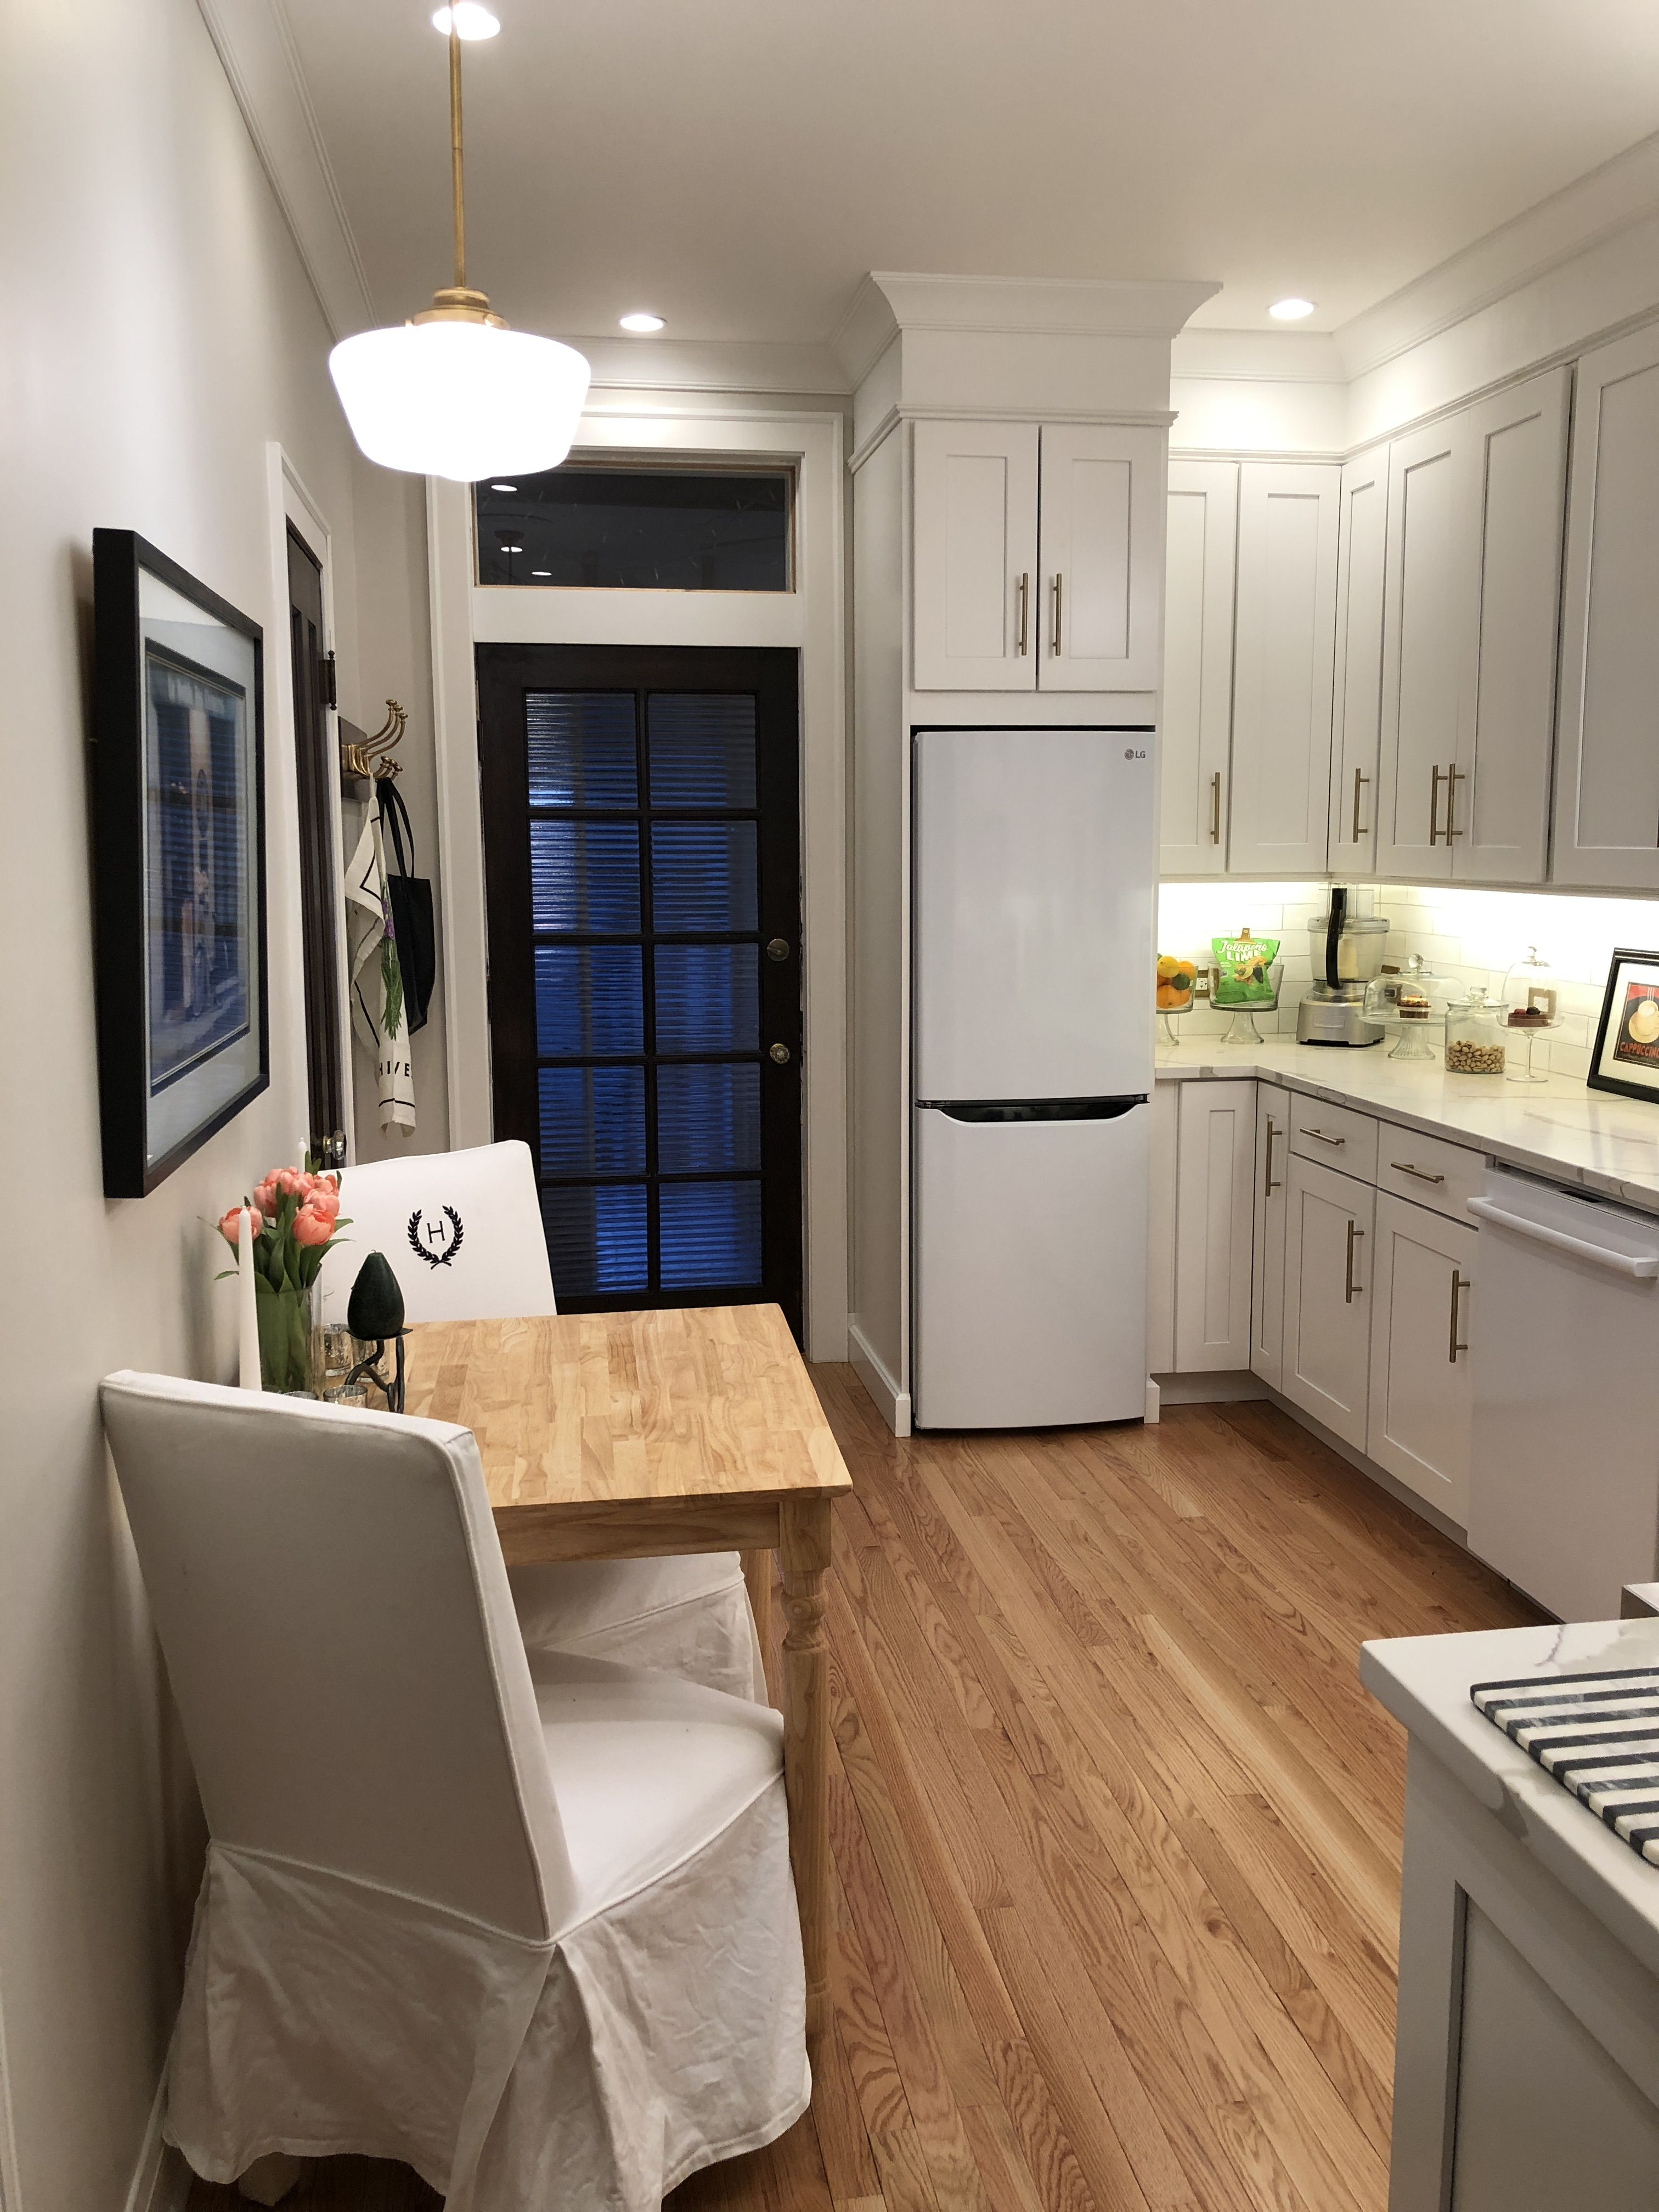 My Bungalow Kitchen 10 Wide X 15 Long And 9 Ceilings Is The Square Footage Bungalow Kitchen Kitchen Design New Kitchen